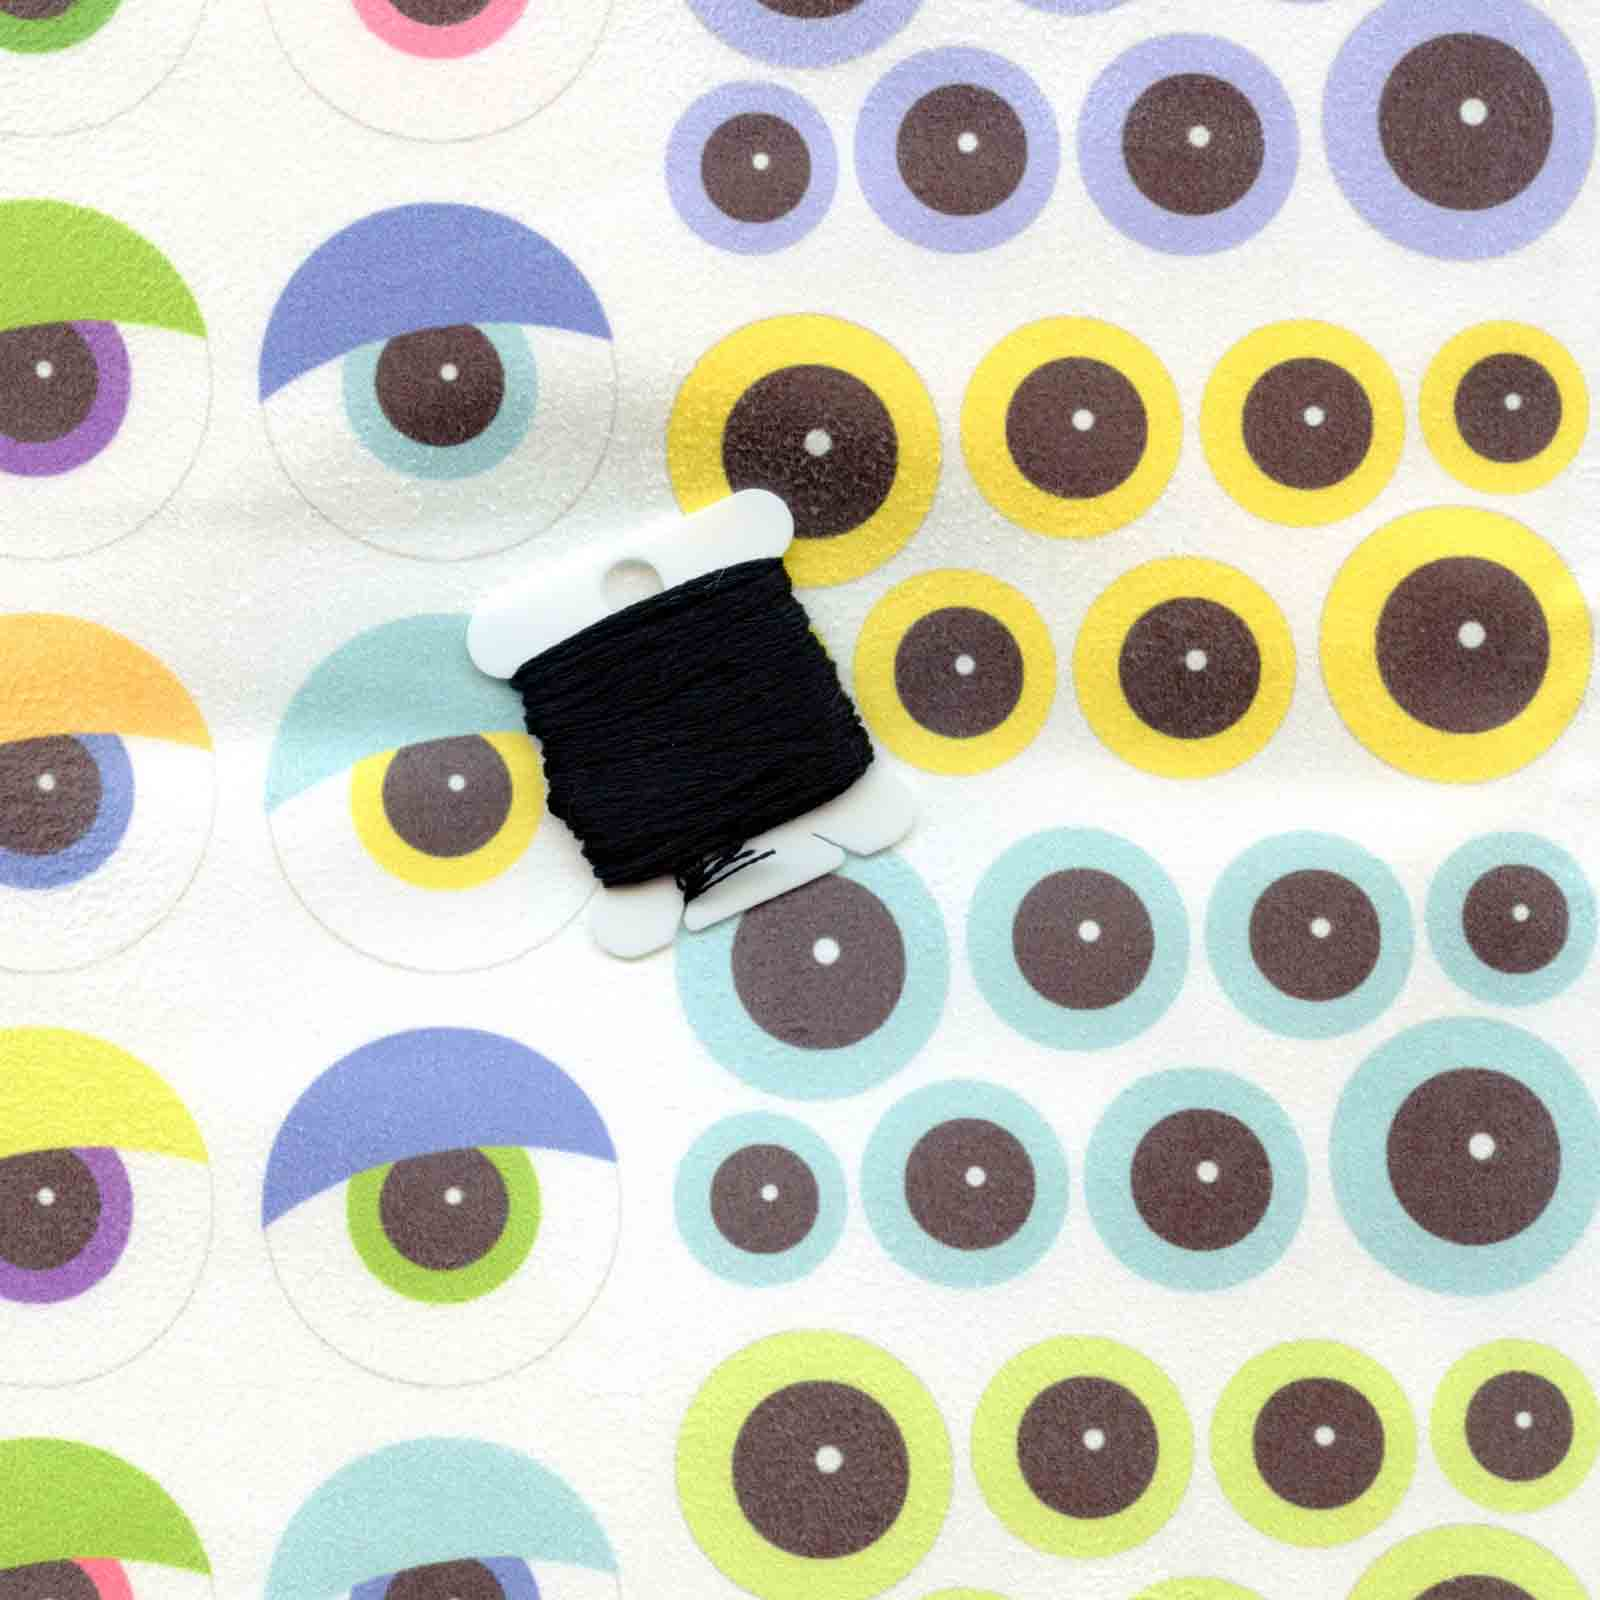 Spoonflower Faux Suede colored eyeballs compared to black